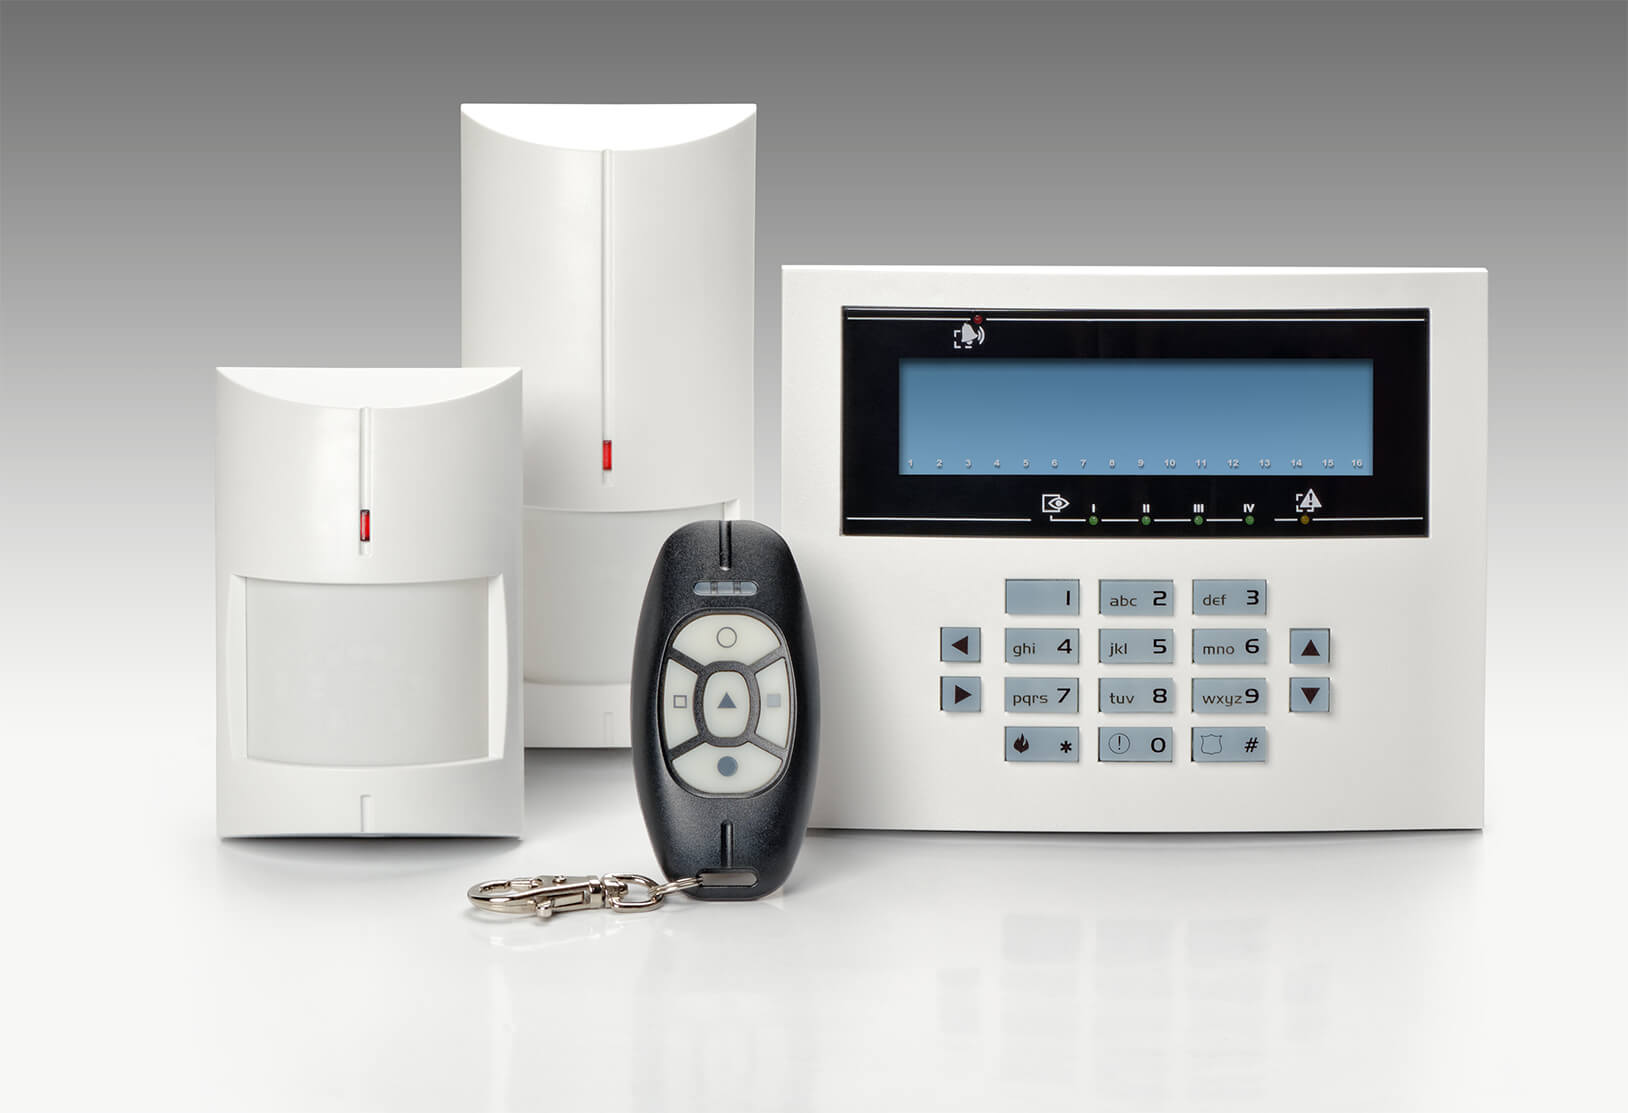 Commercial Burglar Alarms For Business in Finsbury EC2  - Local Finsbury EC2 burglar alarm company.Call 02078872244 - Dedicated to Safety & Security. Companies, shops and homes ..